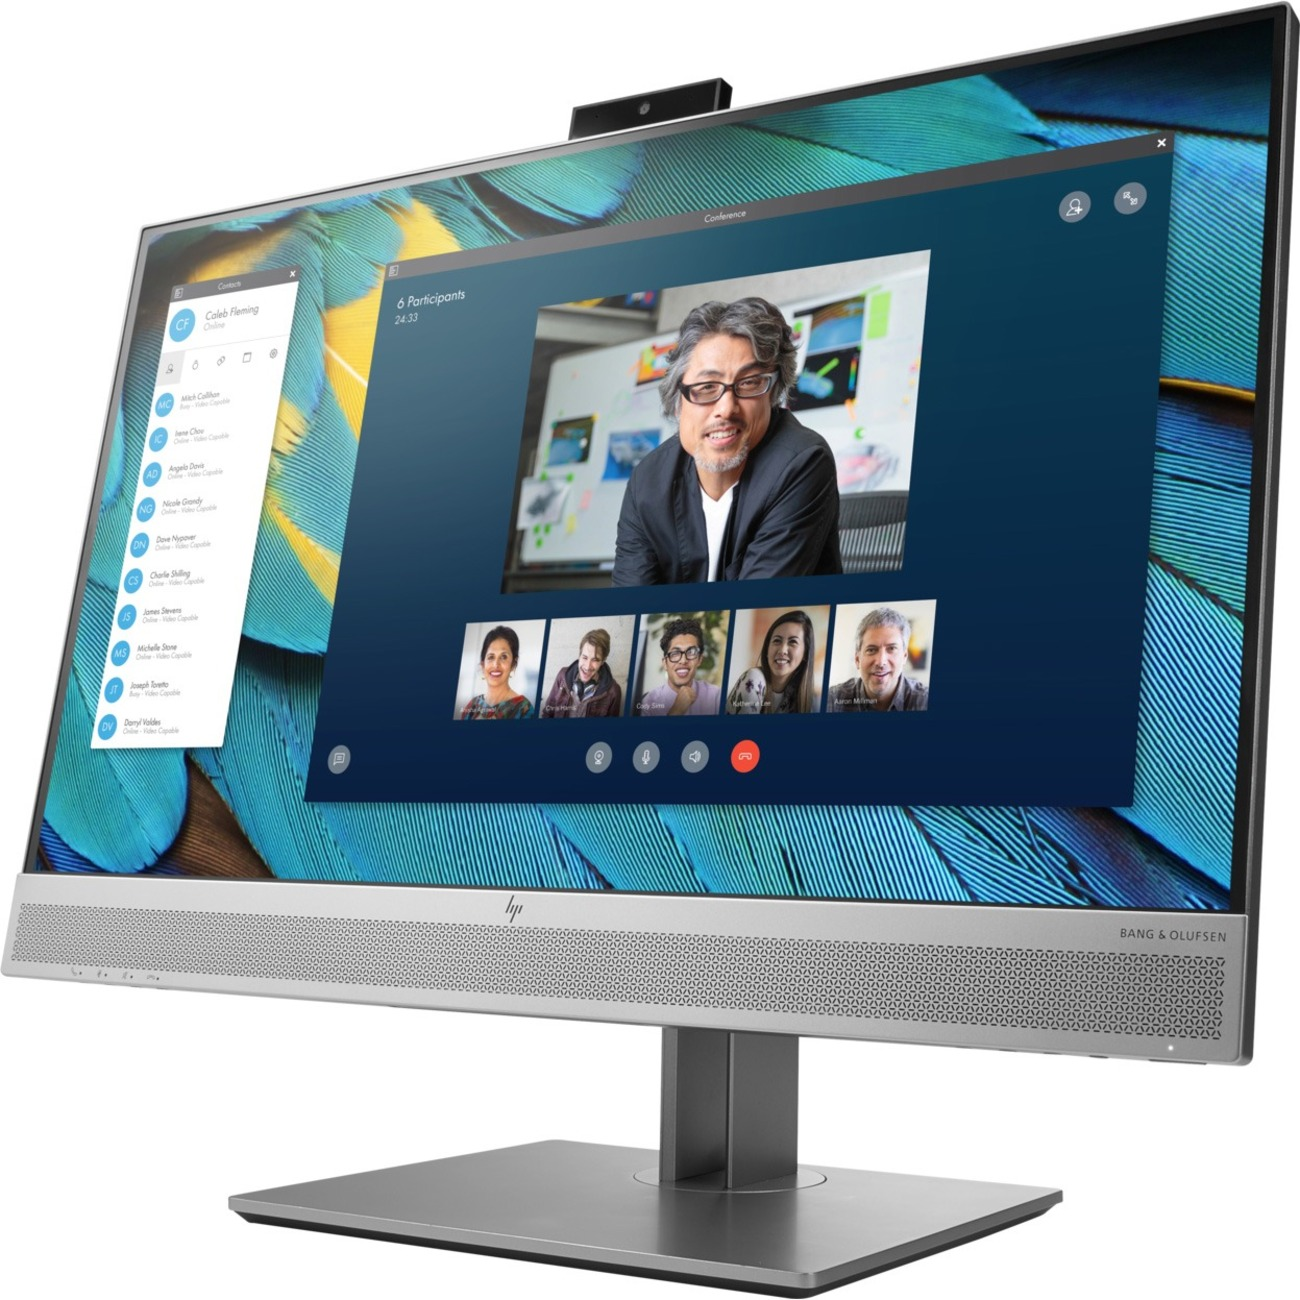 """HP Business E243m 23.8"""" Full HD WLED LCD Monitor - 16:9 - Black, Silver_subImage_1"""